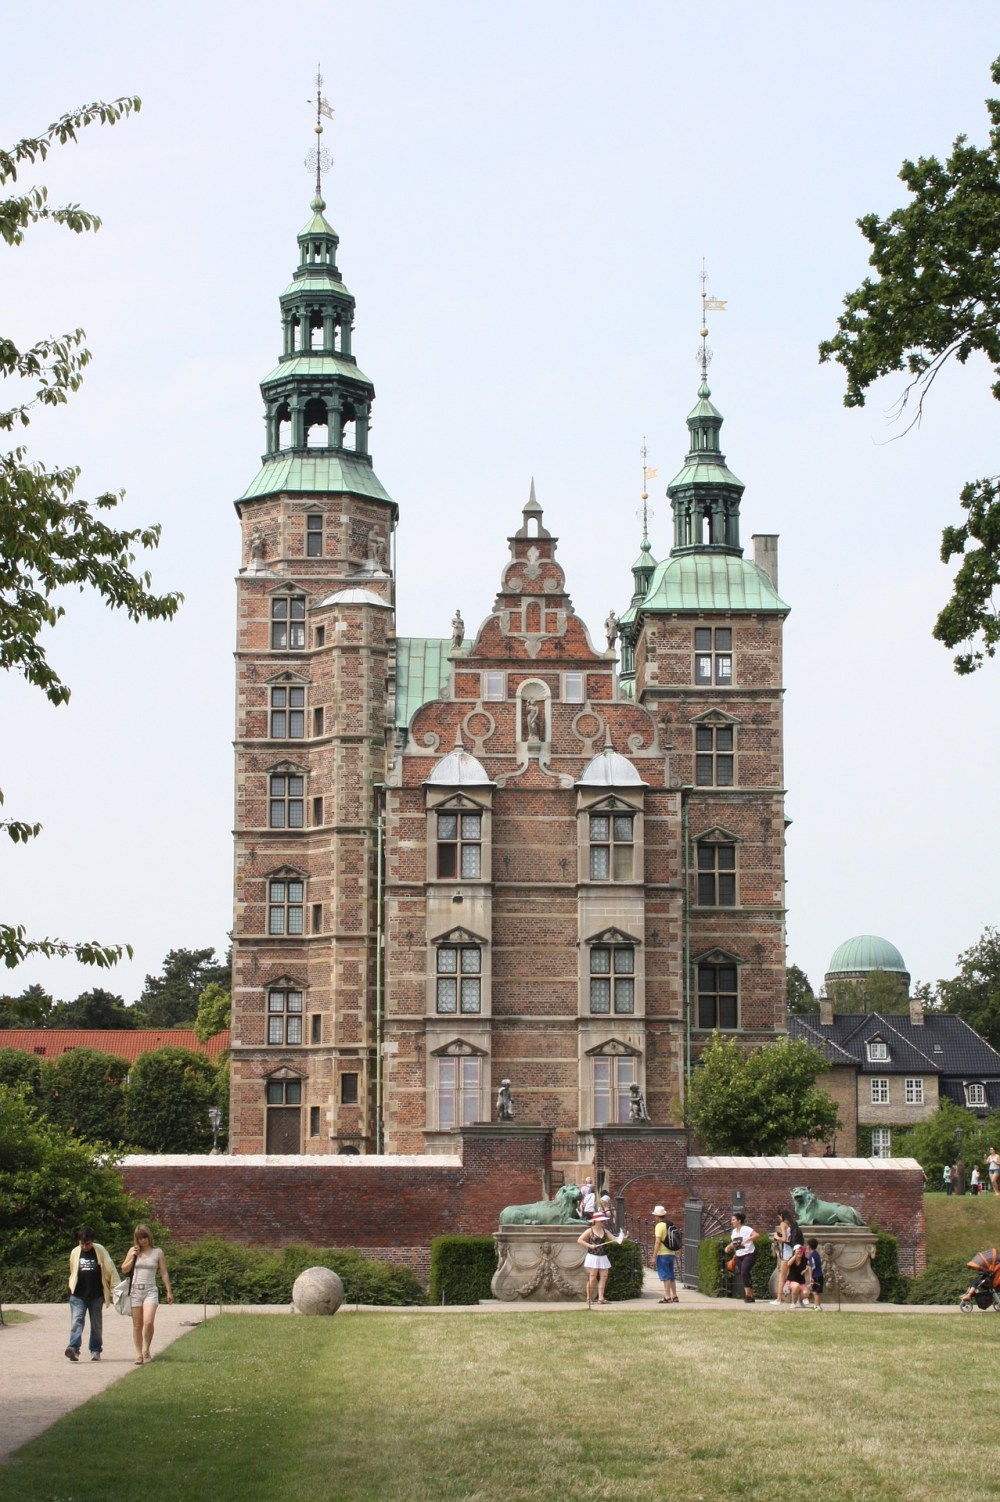 Rosenborg Castle, Copenhagen, Denmark - a beautiful old castle set in pristine park land.